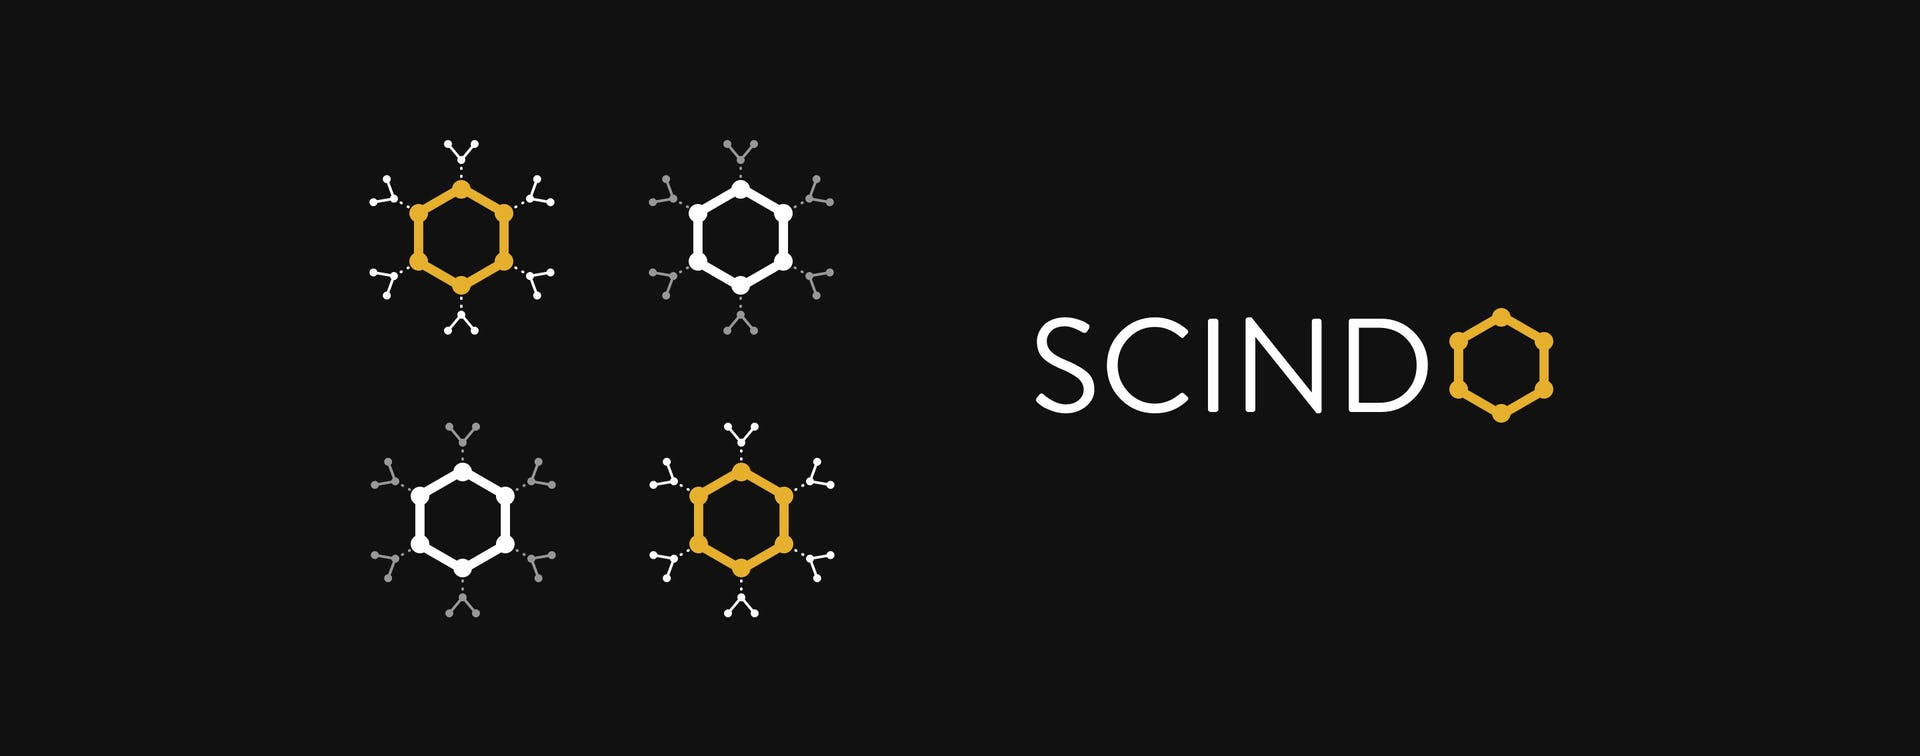 Scindo logo and benzene structure symbol